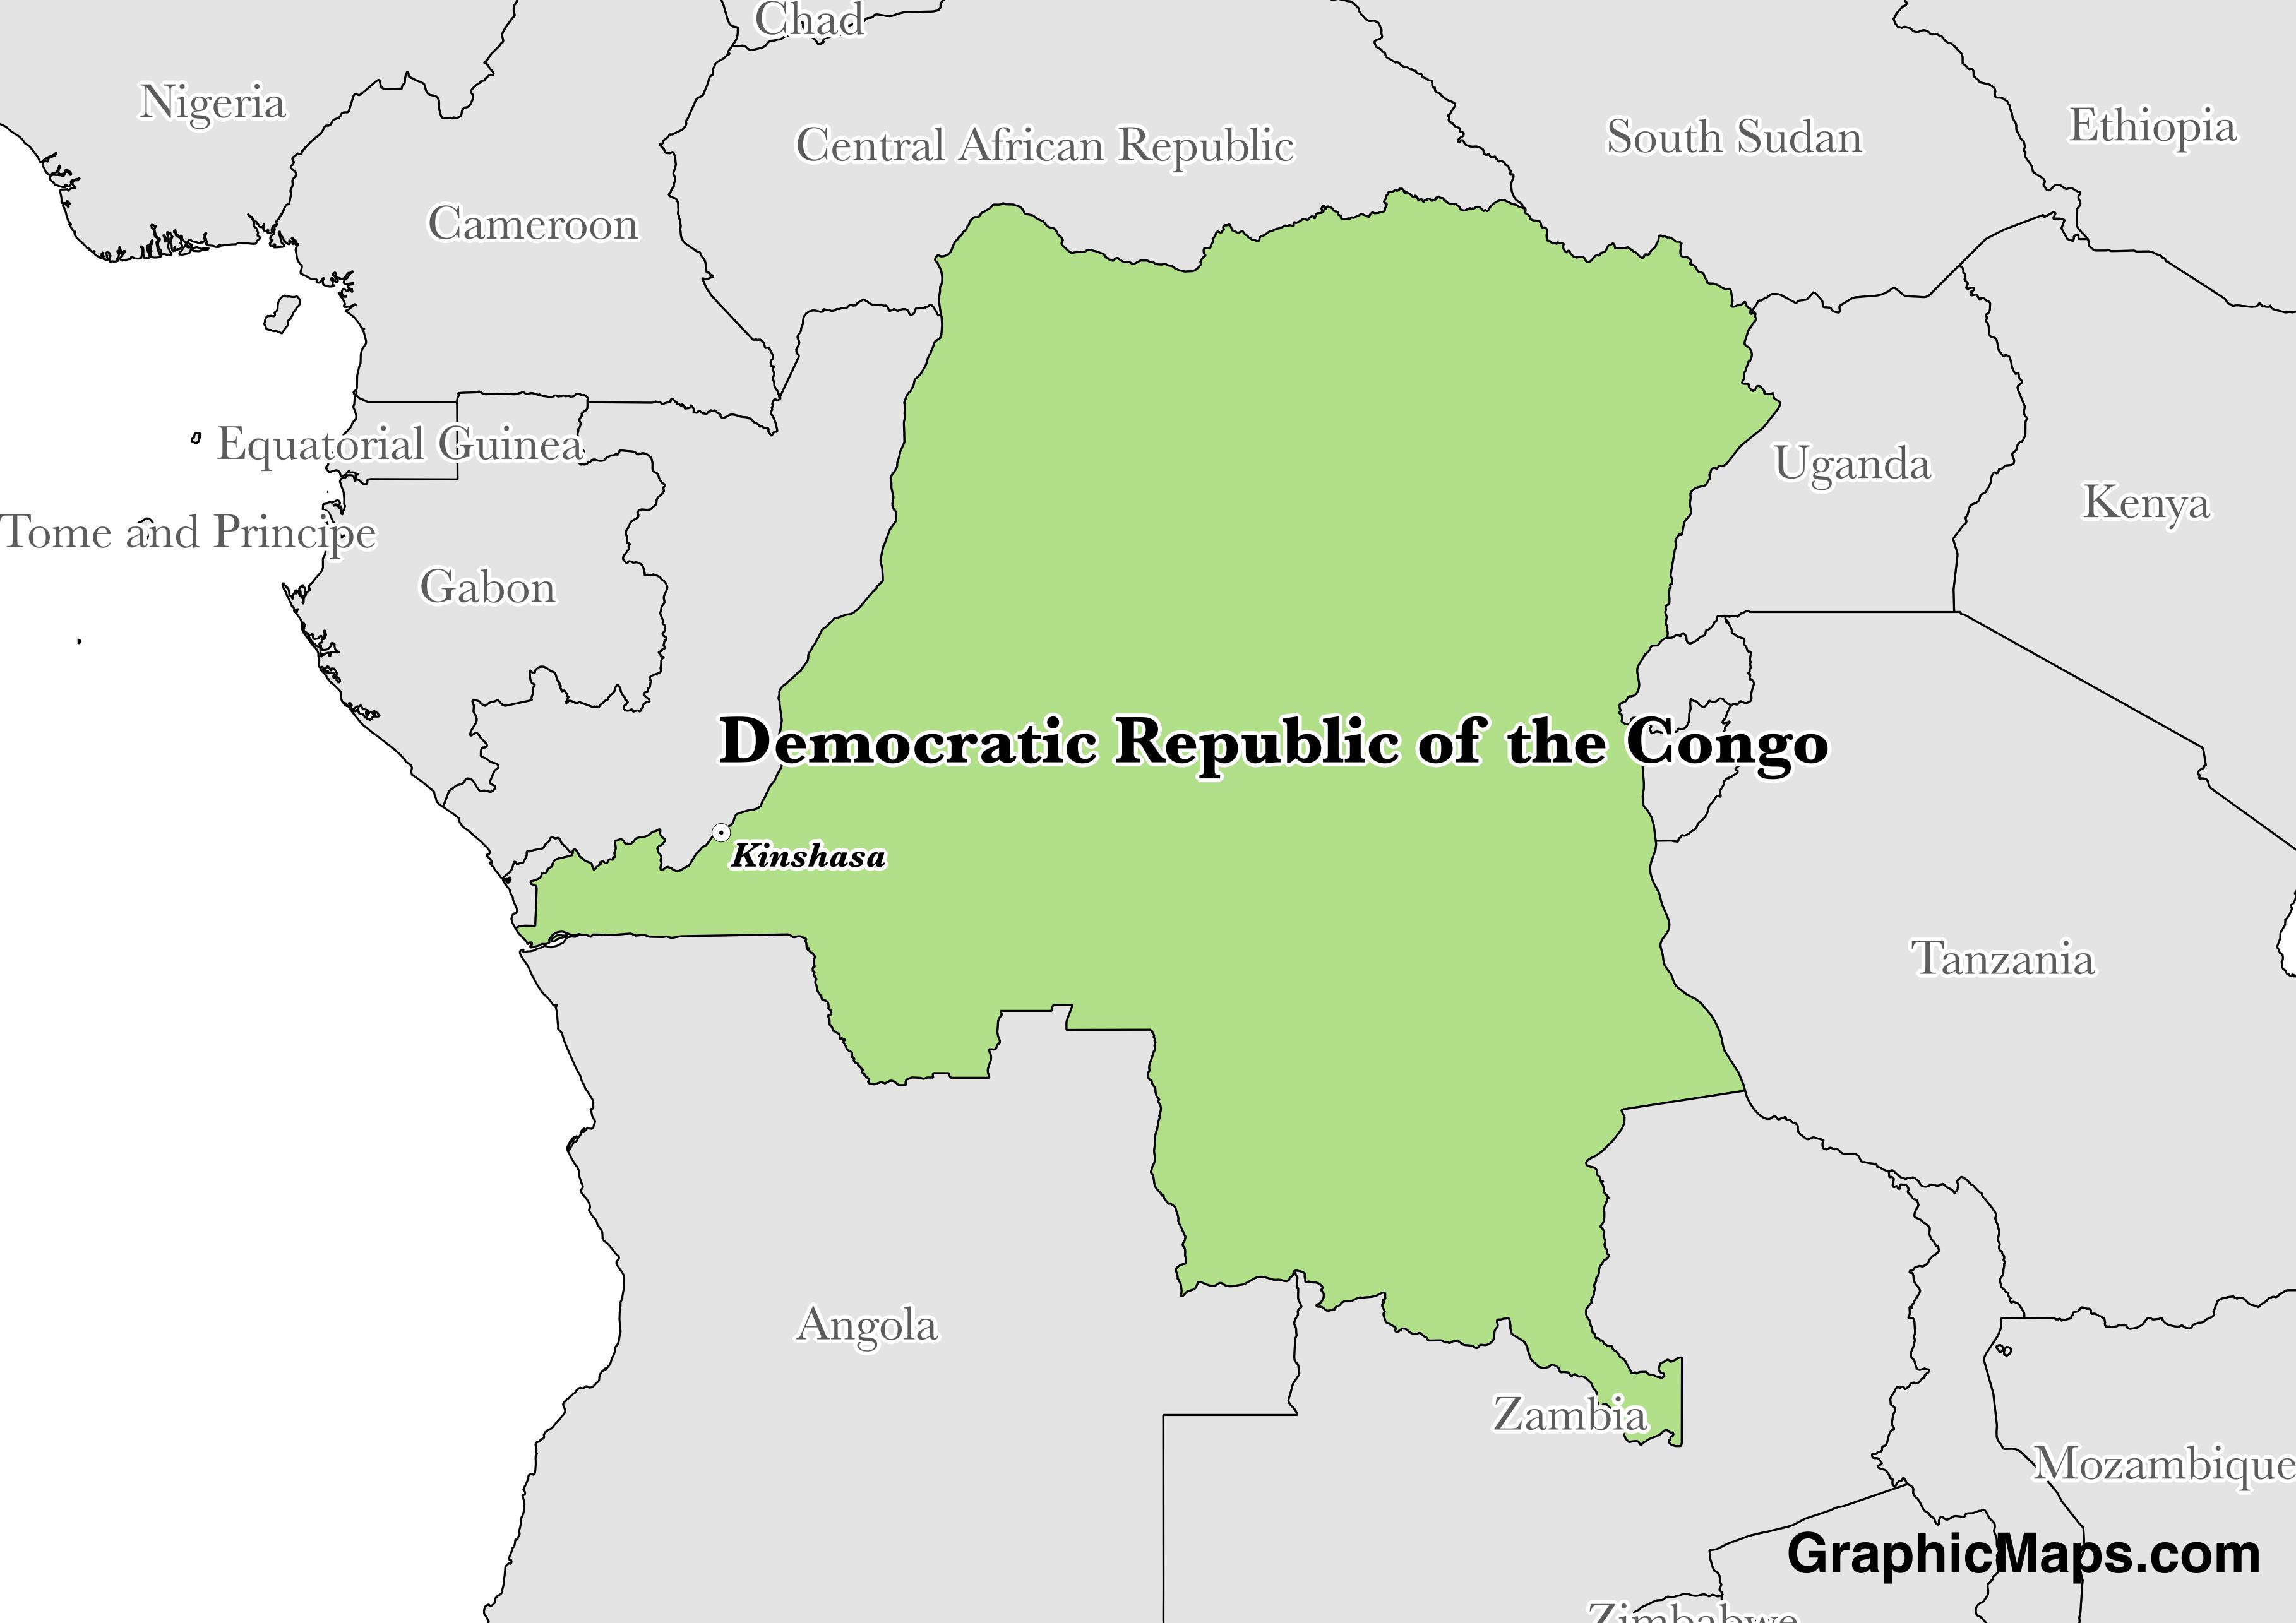 Map showing the location of Democratic Republic of the Congo